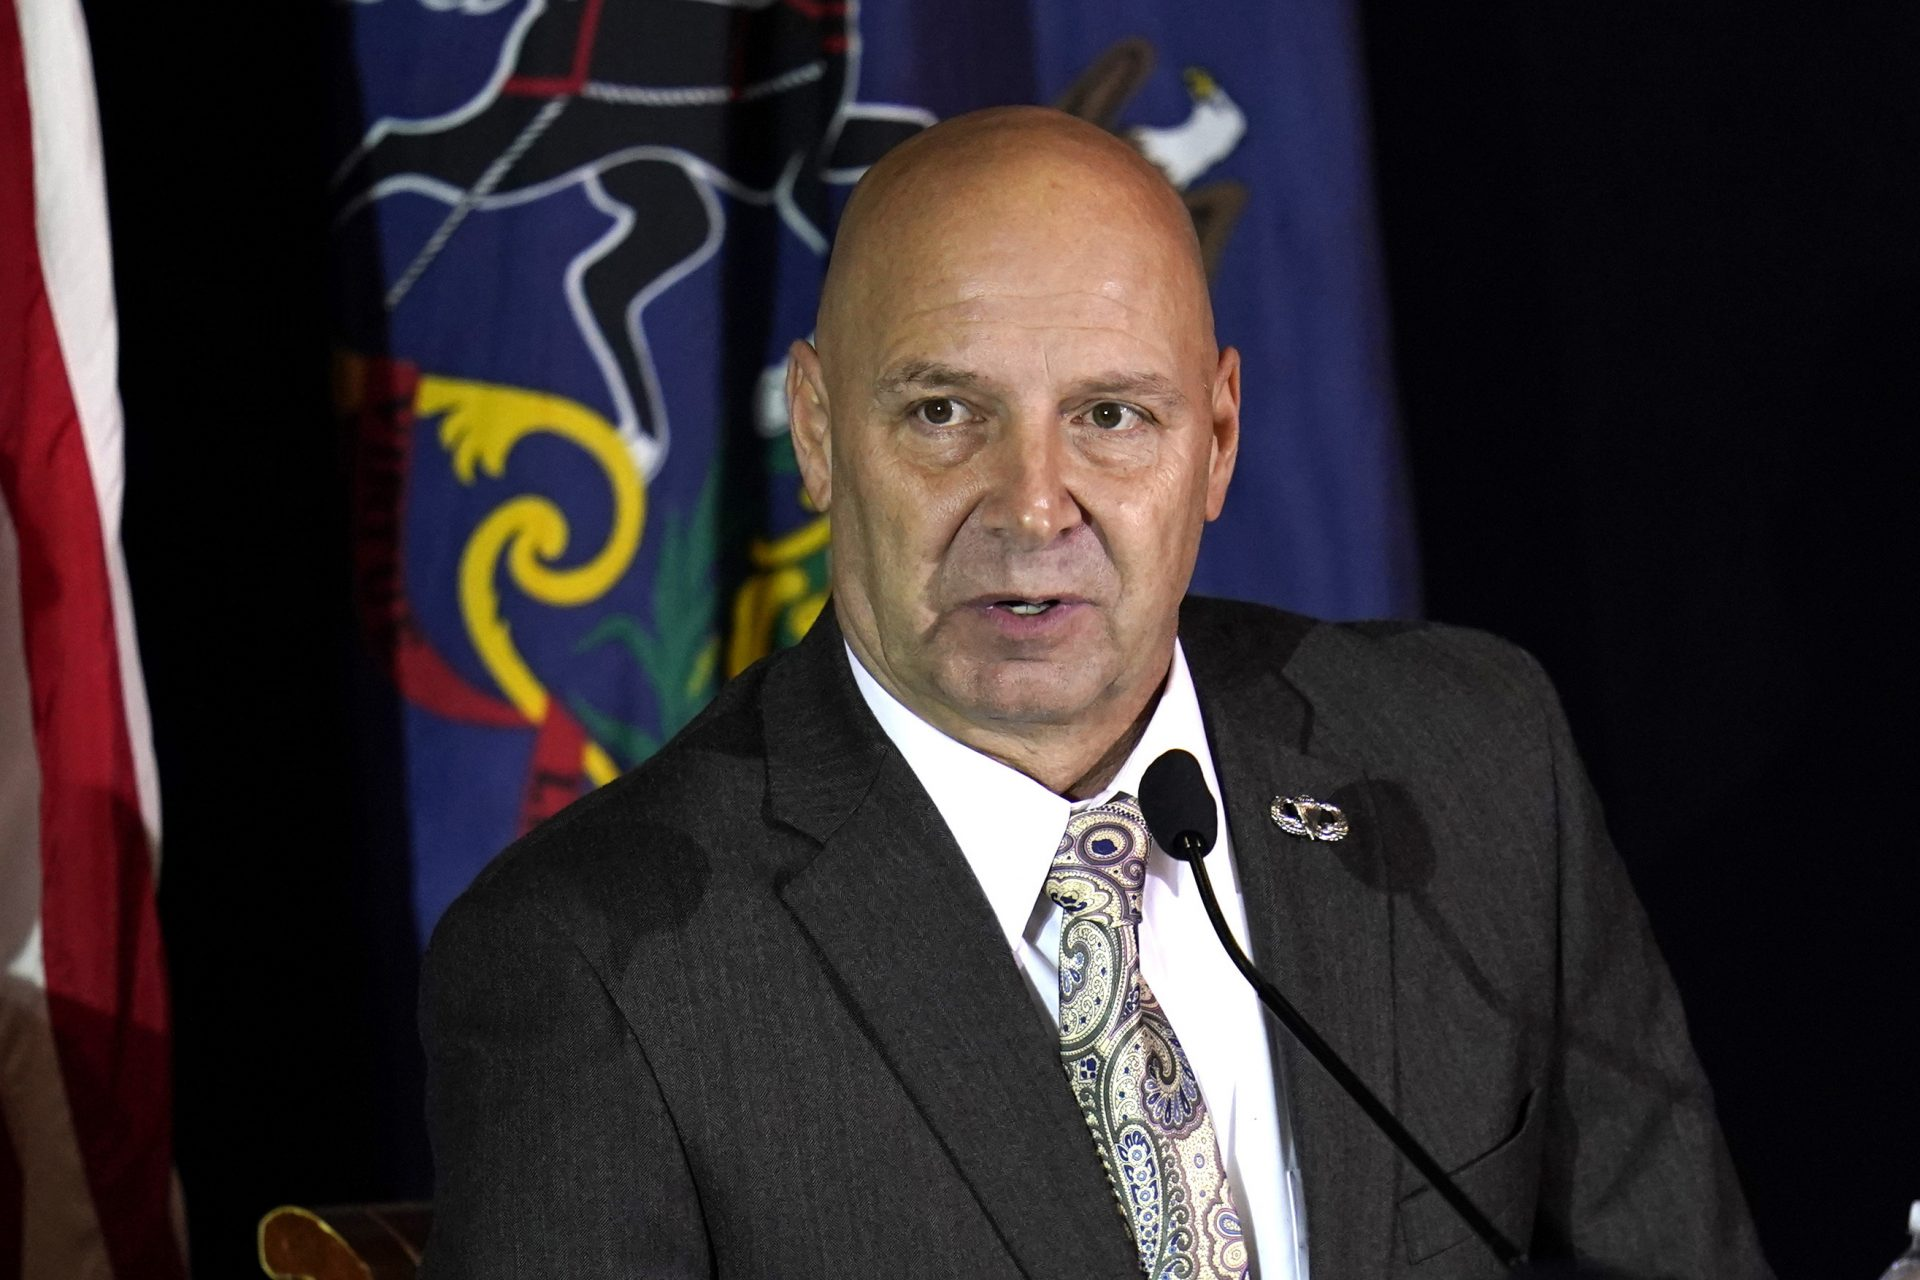 Pennsylvania state Sen. Doug Mastriano, R-Franklin, attends a hearing of the Pennsylvania State Senate Majority Policy Committee, Wednesday, Nov. 25, 2020, in Gettysburg, Pa. Mastriano revealed five days later that he has COVID-19.